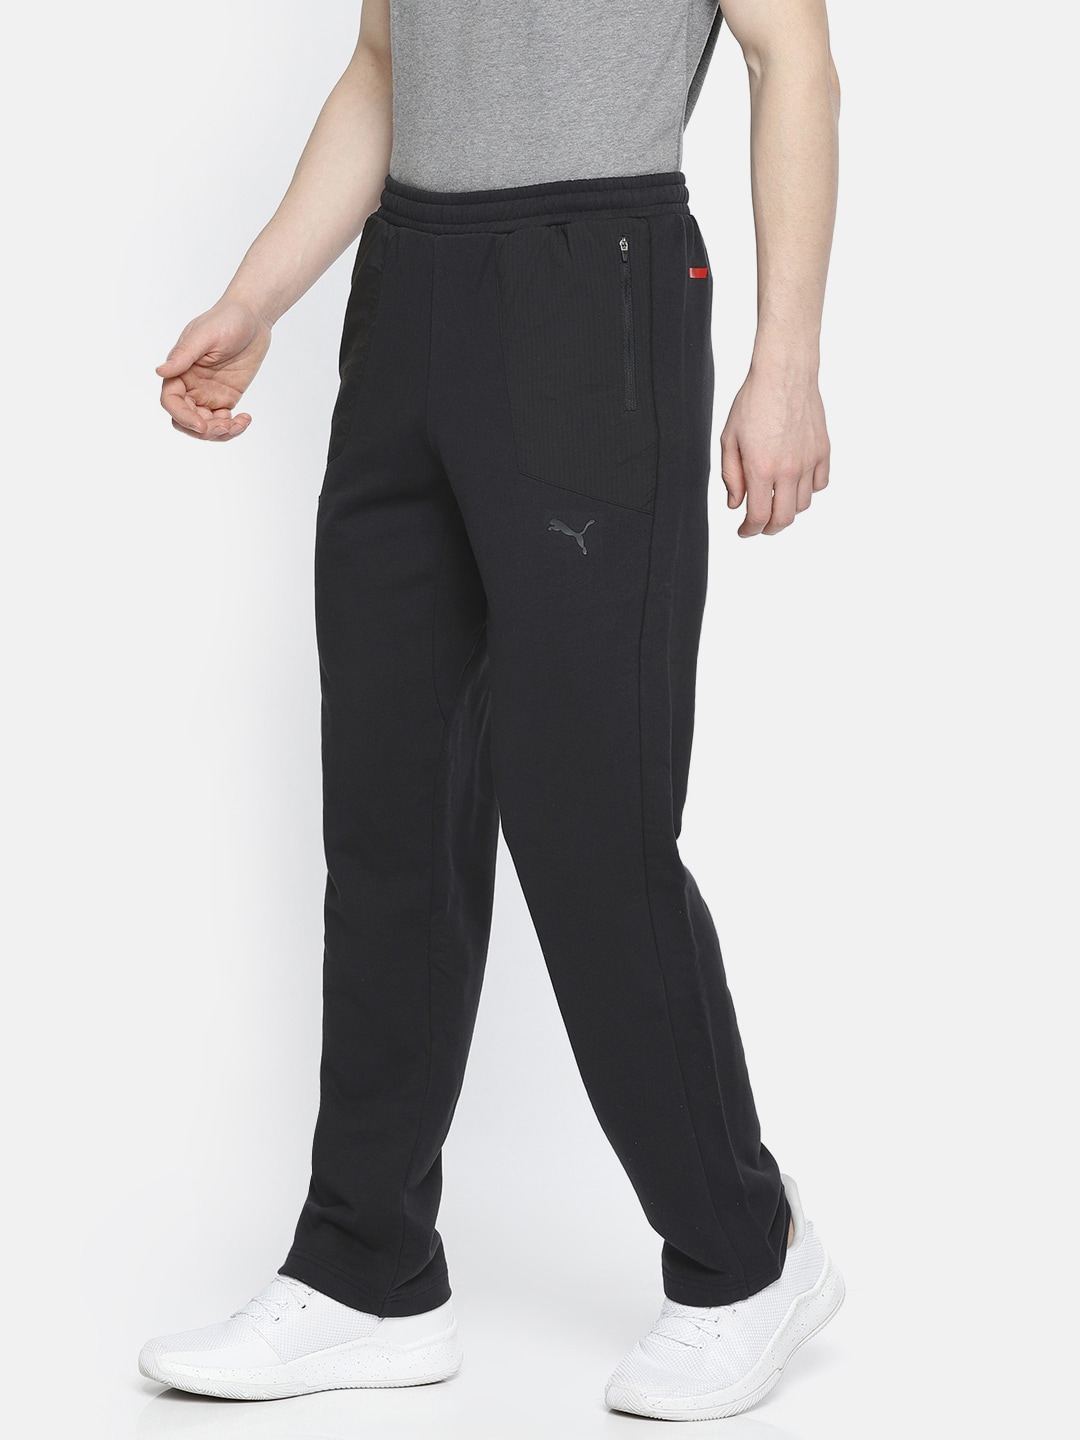 033c0c09db92 Puma Men Track Pants - Buy Puma Men Track Pants online in India